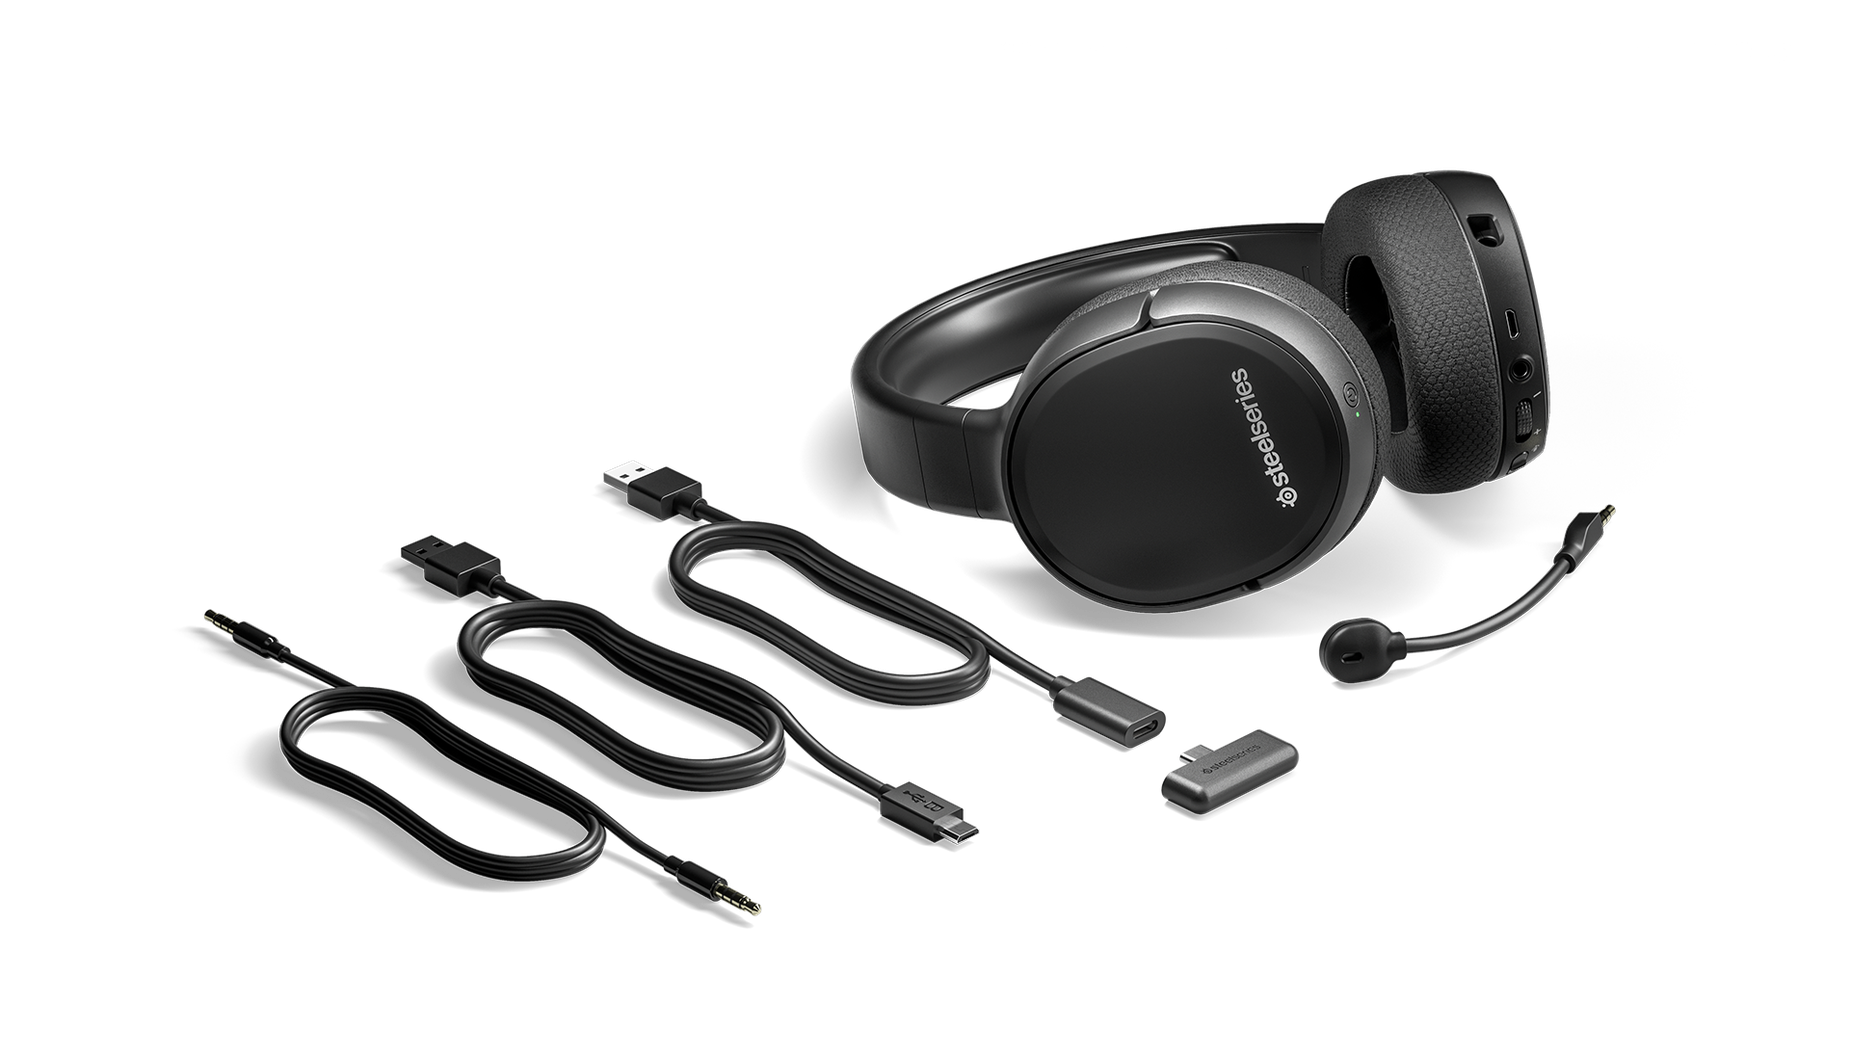 The Arctis 1 Wireless gaming headset surrounded by all the box contents including extra cables and the wireless dongle.